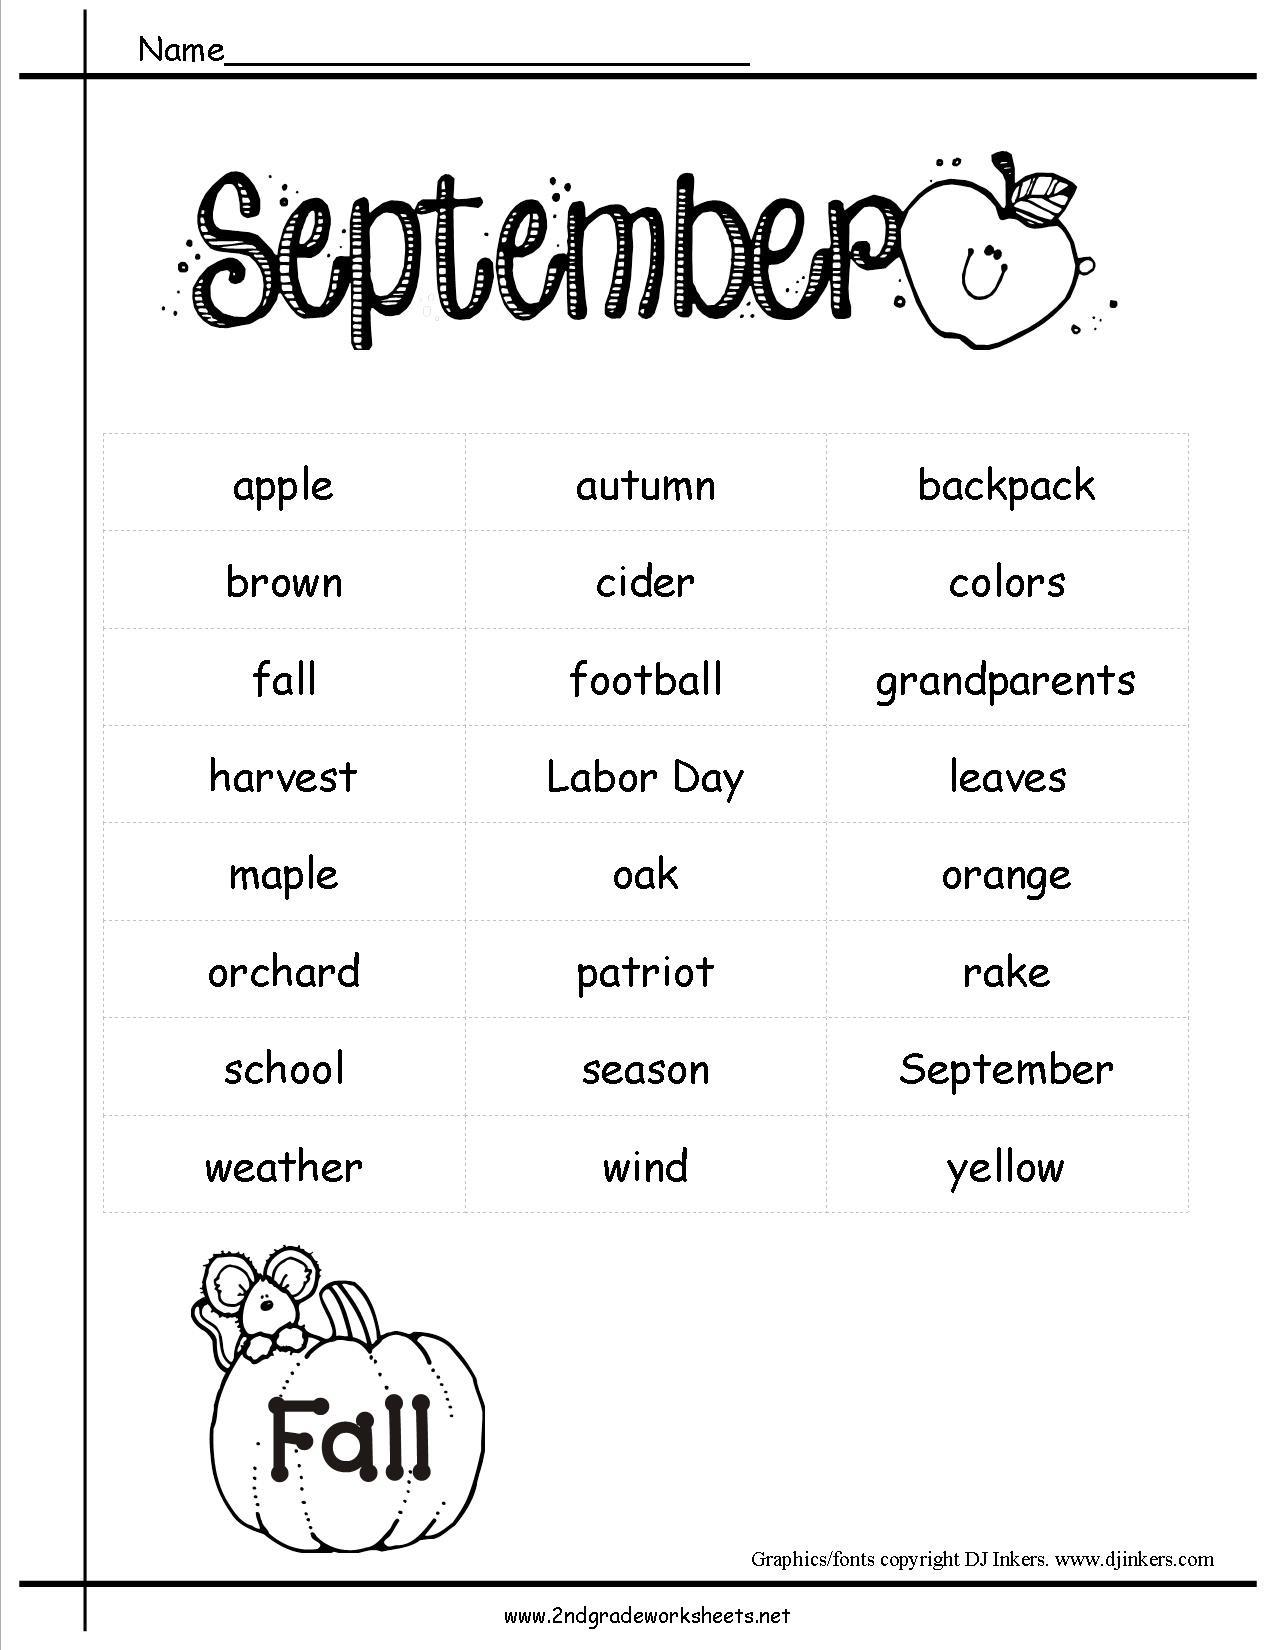 September Holidays Themes Lesson Plans Printouts